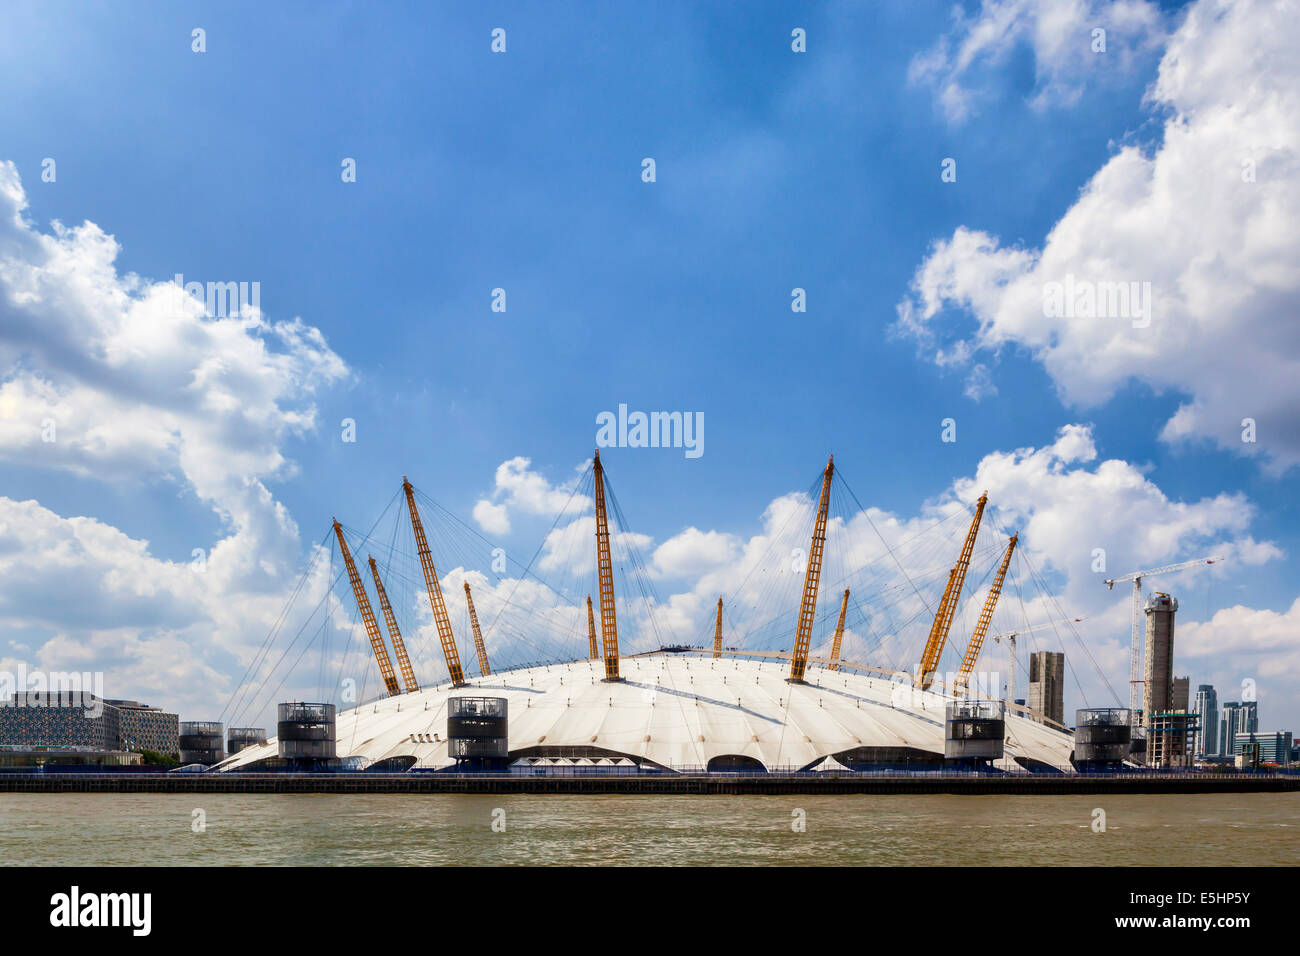 The 02 Arena, The Dome, the Millenium Dome - Entertainment and sports venue on the Greenwich Peninsula, North Greenwich, - Stock Image